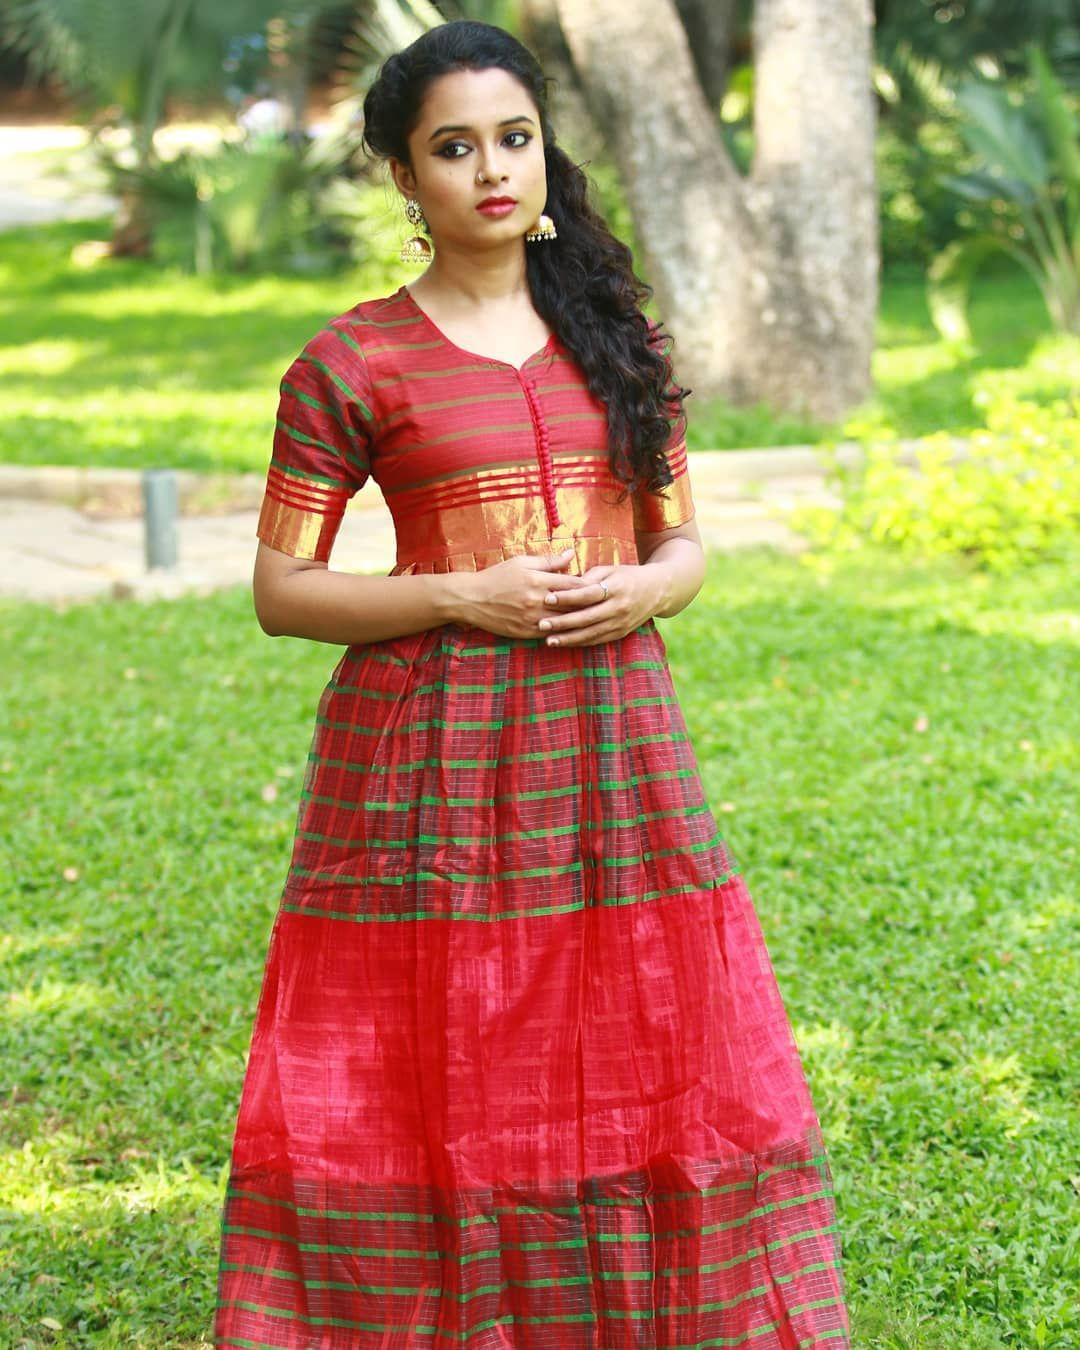 0476c302e0 Try These Traditional Maxi Dresses on Next Festival | Indian Maxi ...